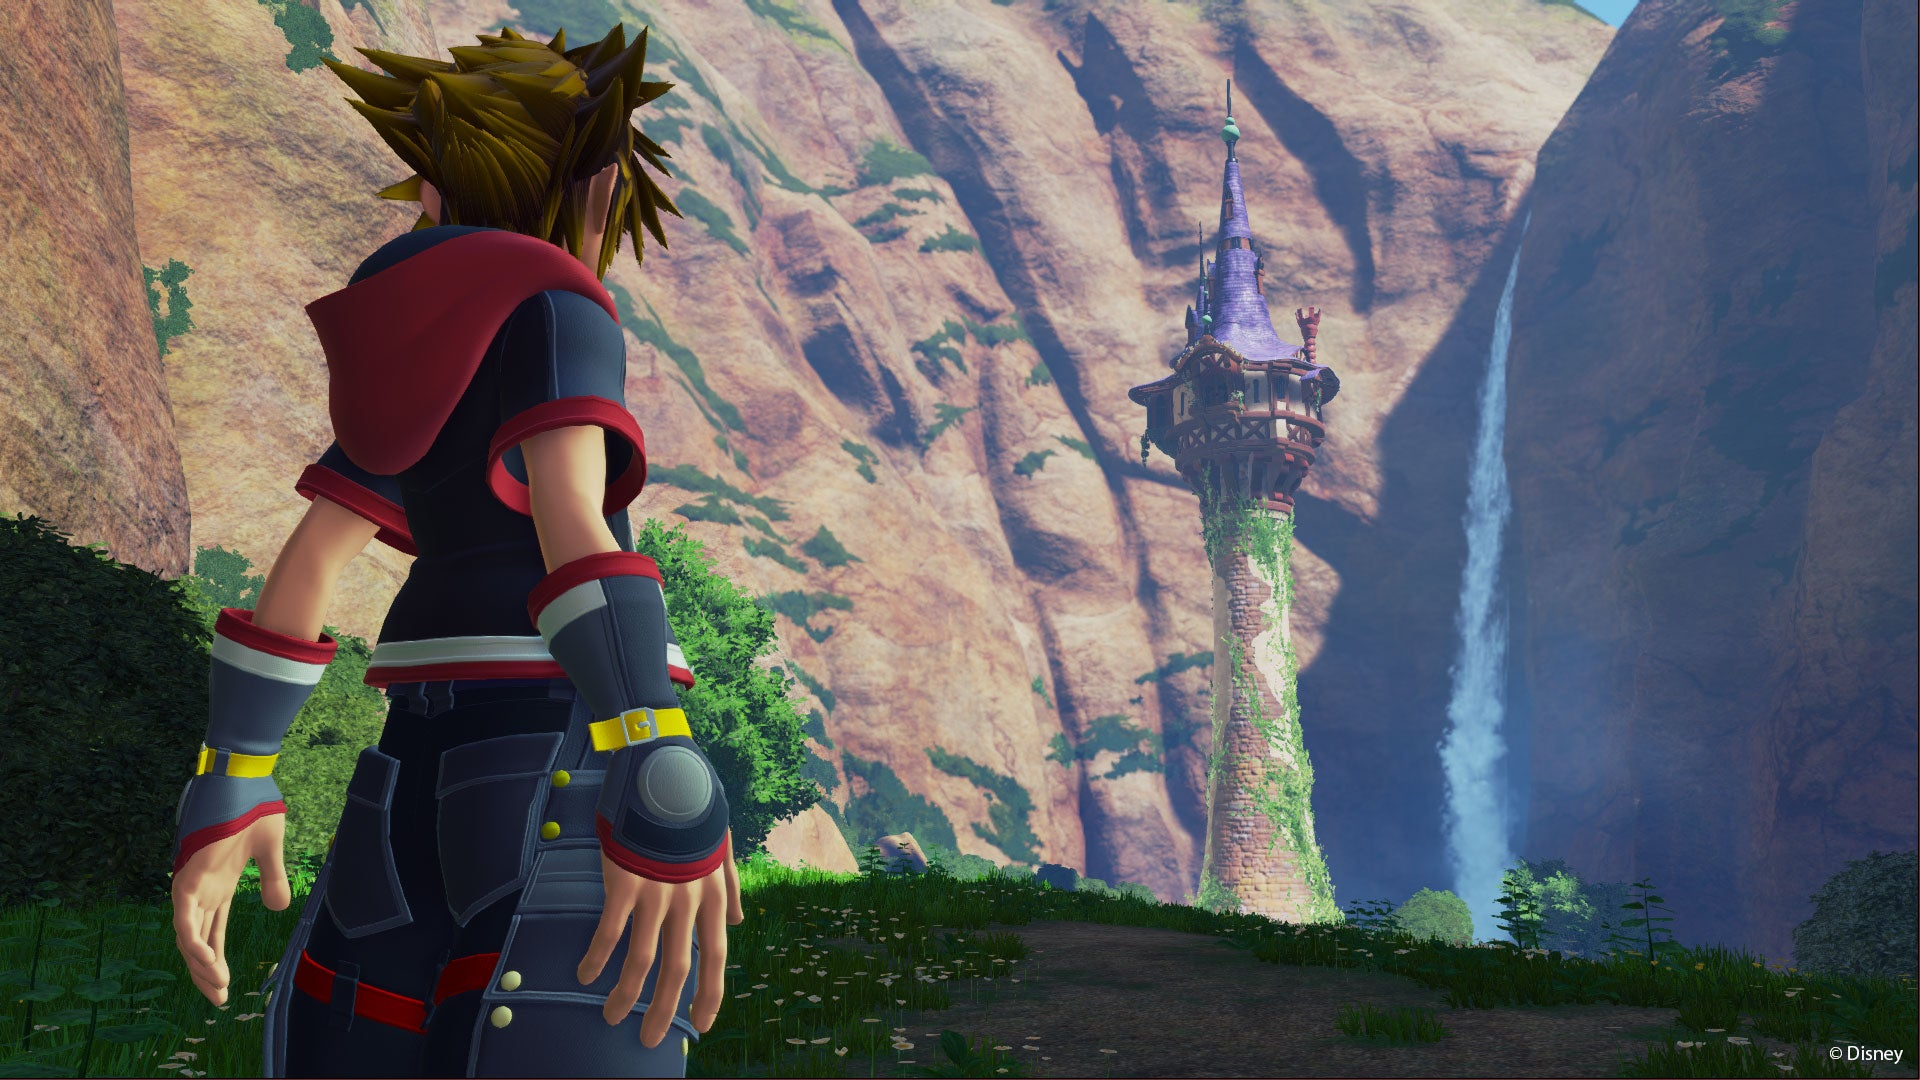 Kingdom Hearts 3: It's All Coming Together